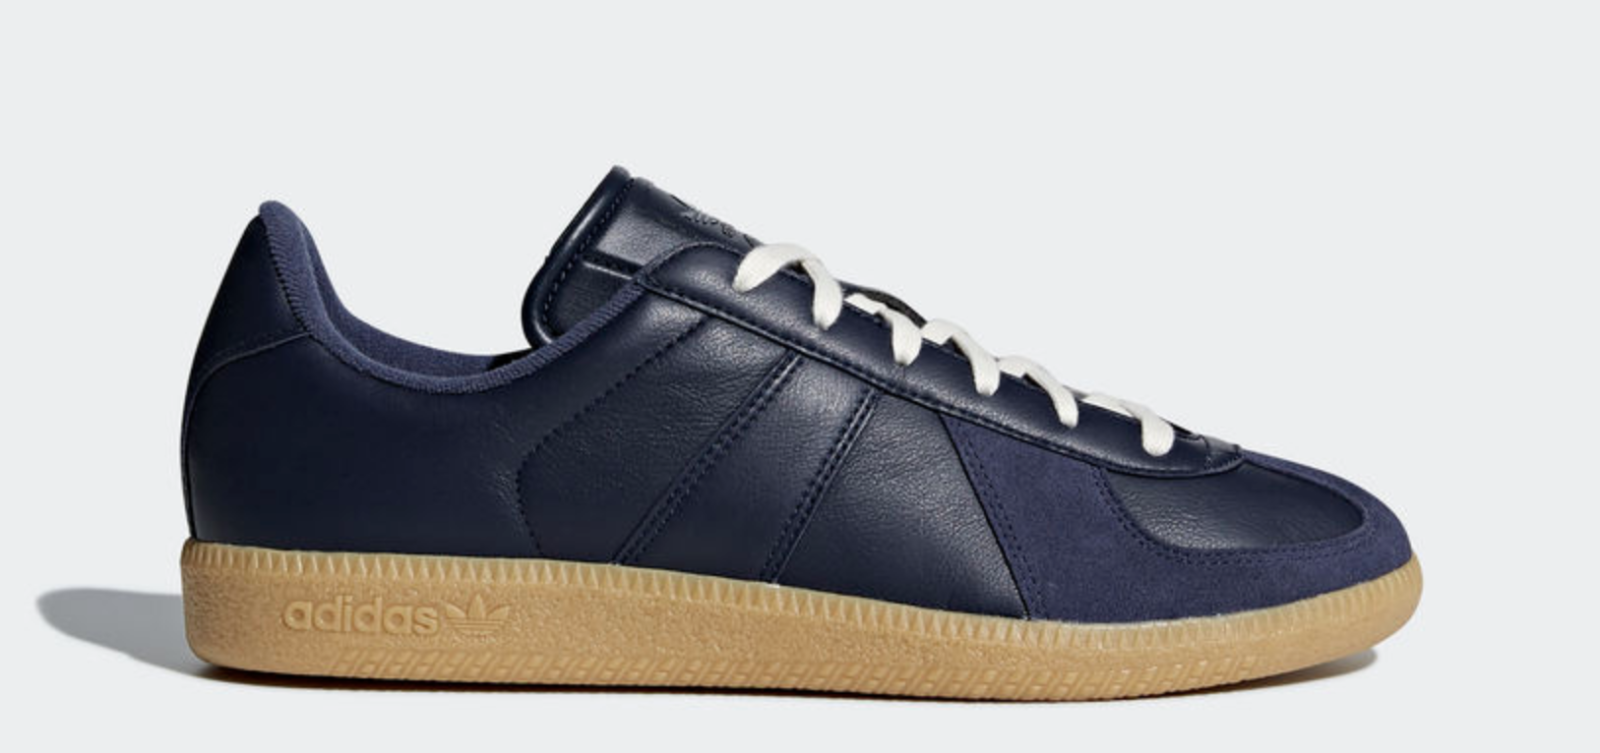 NEW adidas Originals BW ARMY SHOES CQ2756 Navy bluee Gum shoes Sneakers